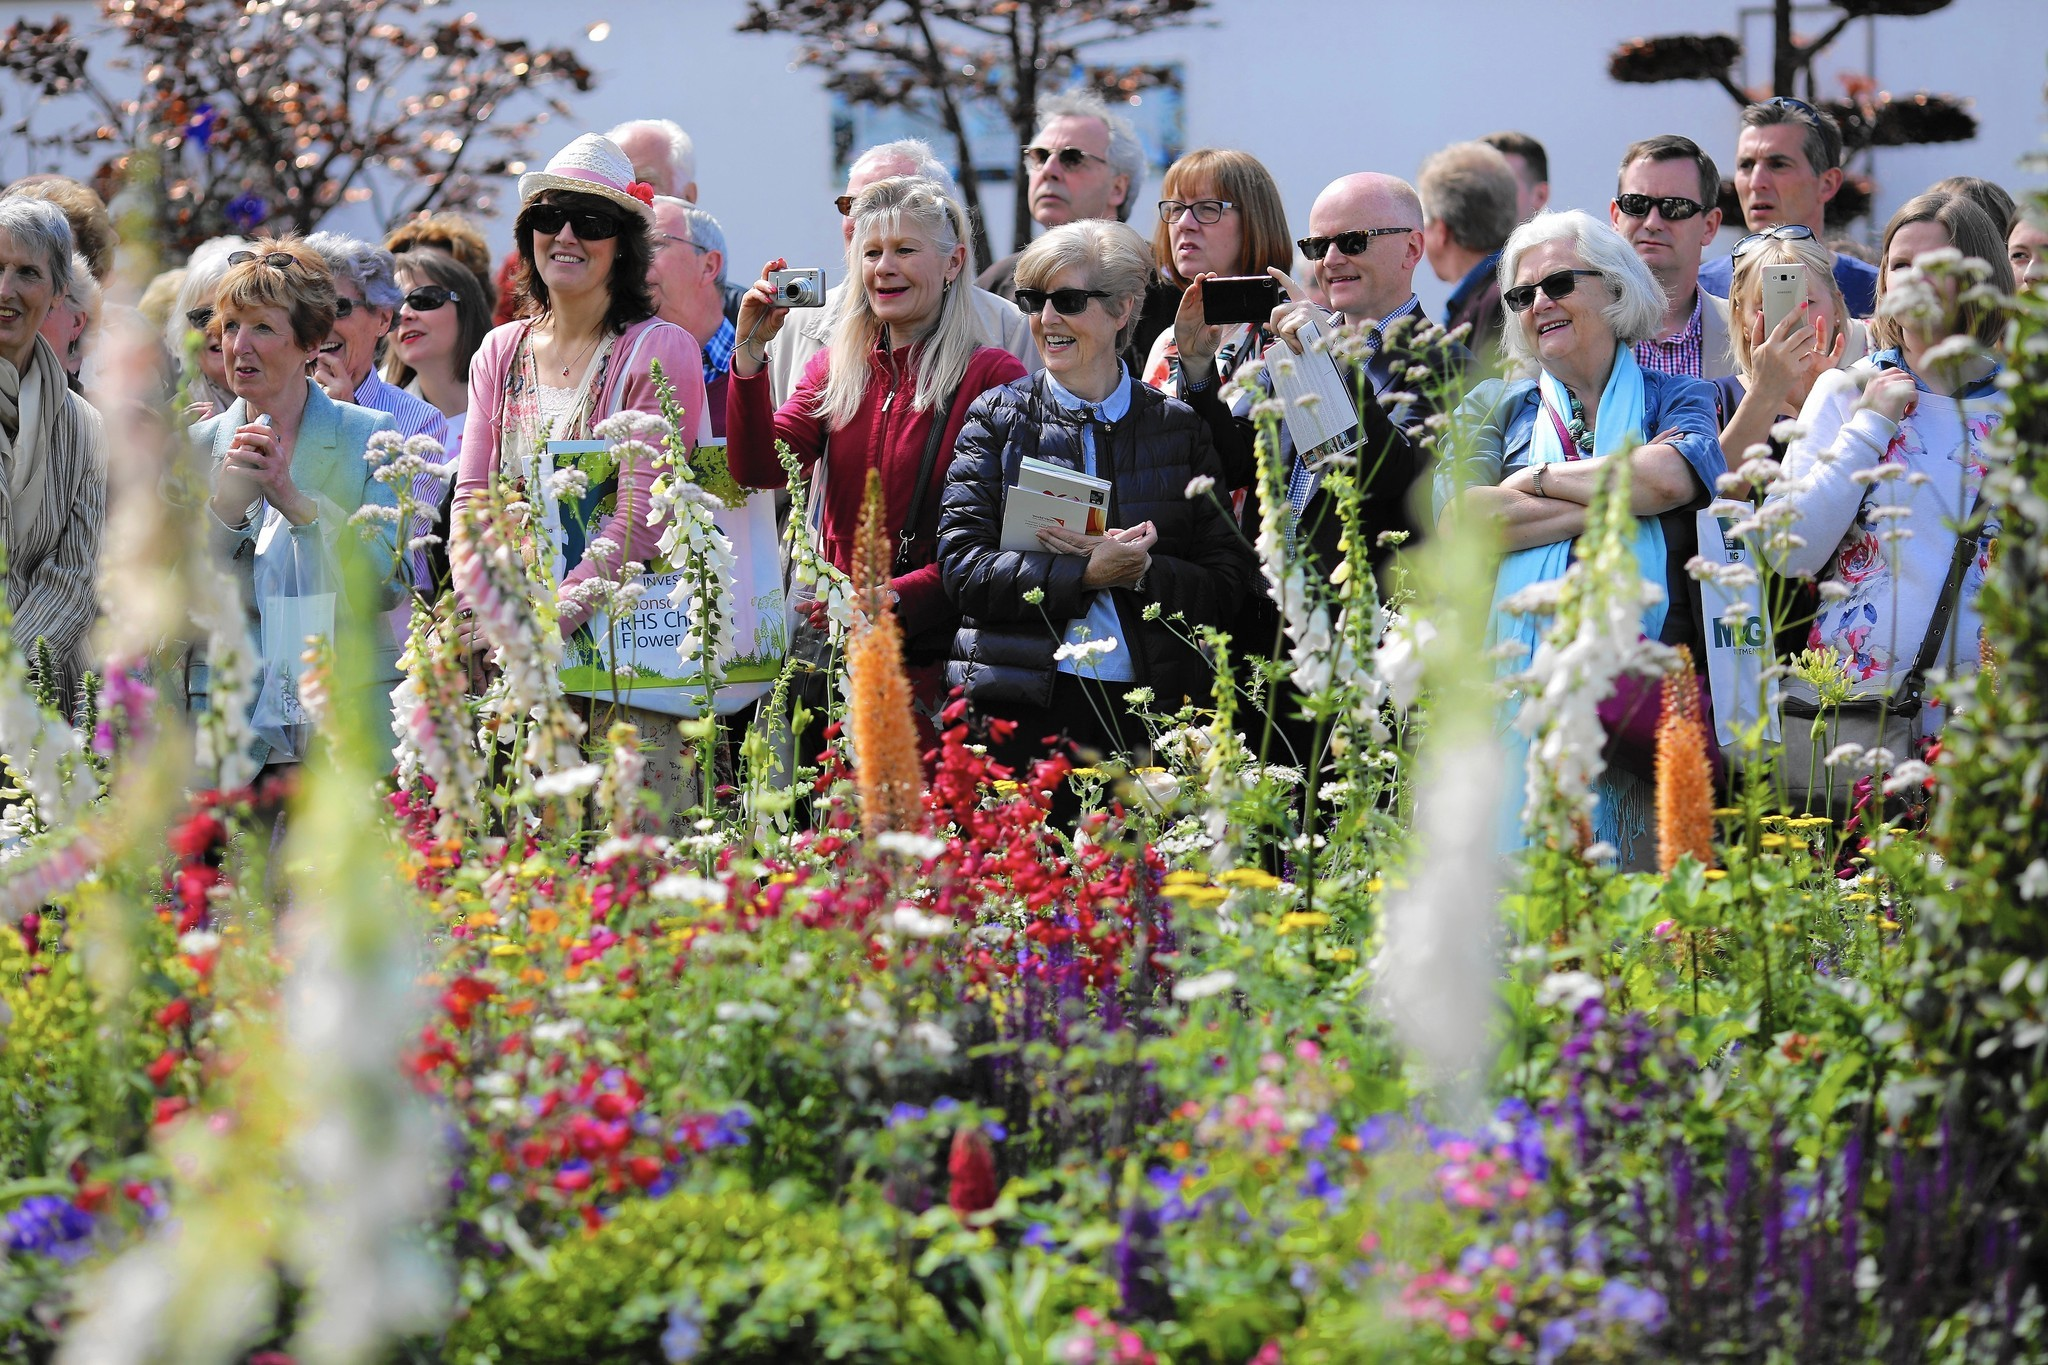 Start planning now to see famous chelsea flower show in - Chicago flower and garden show 2017 ...